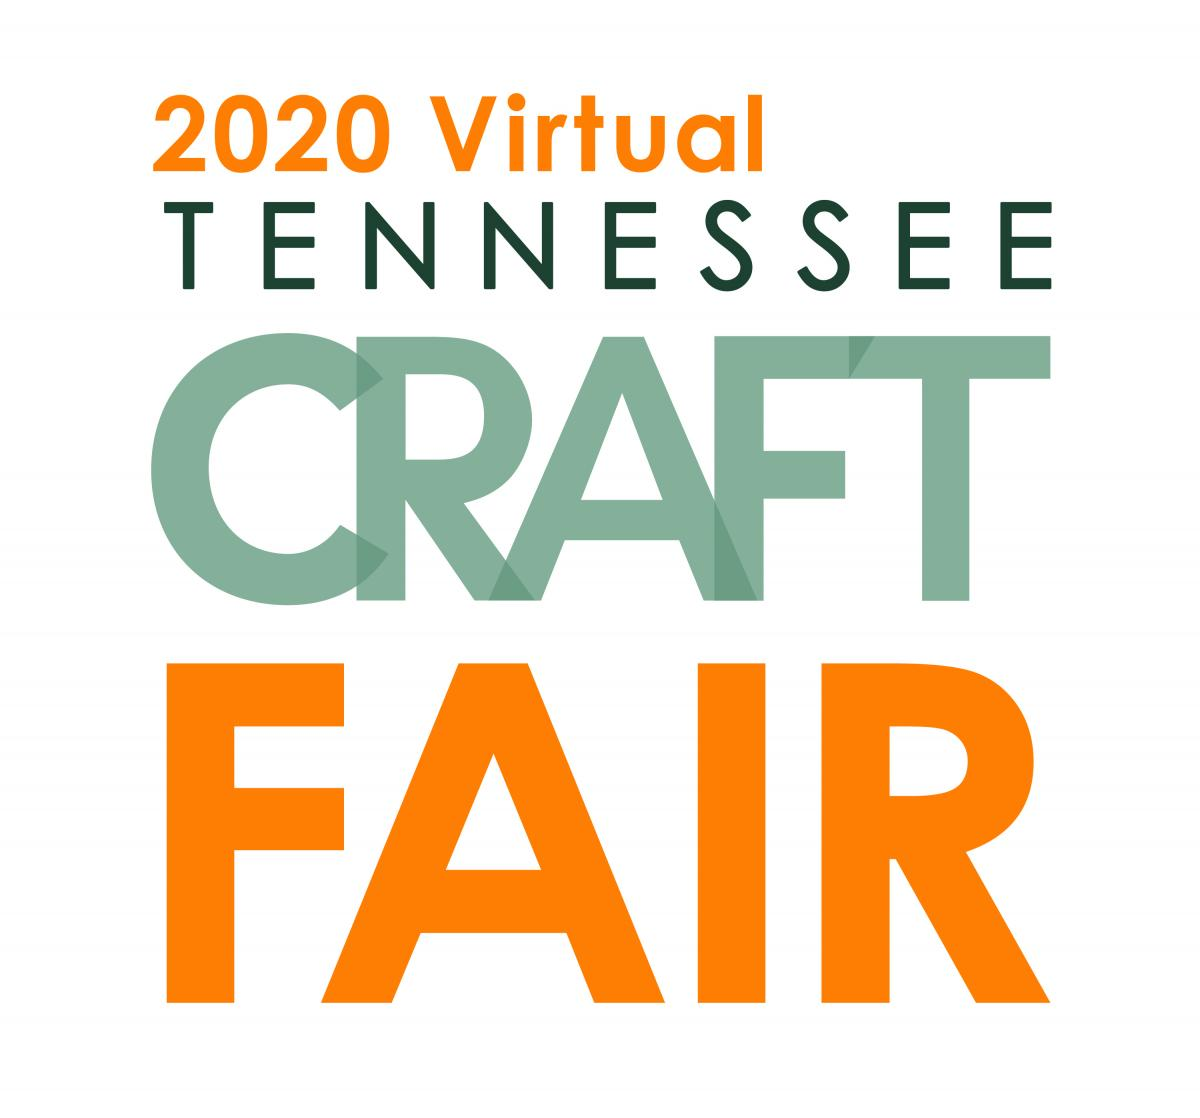 2020 Virtual Tennessee Craft Fair